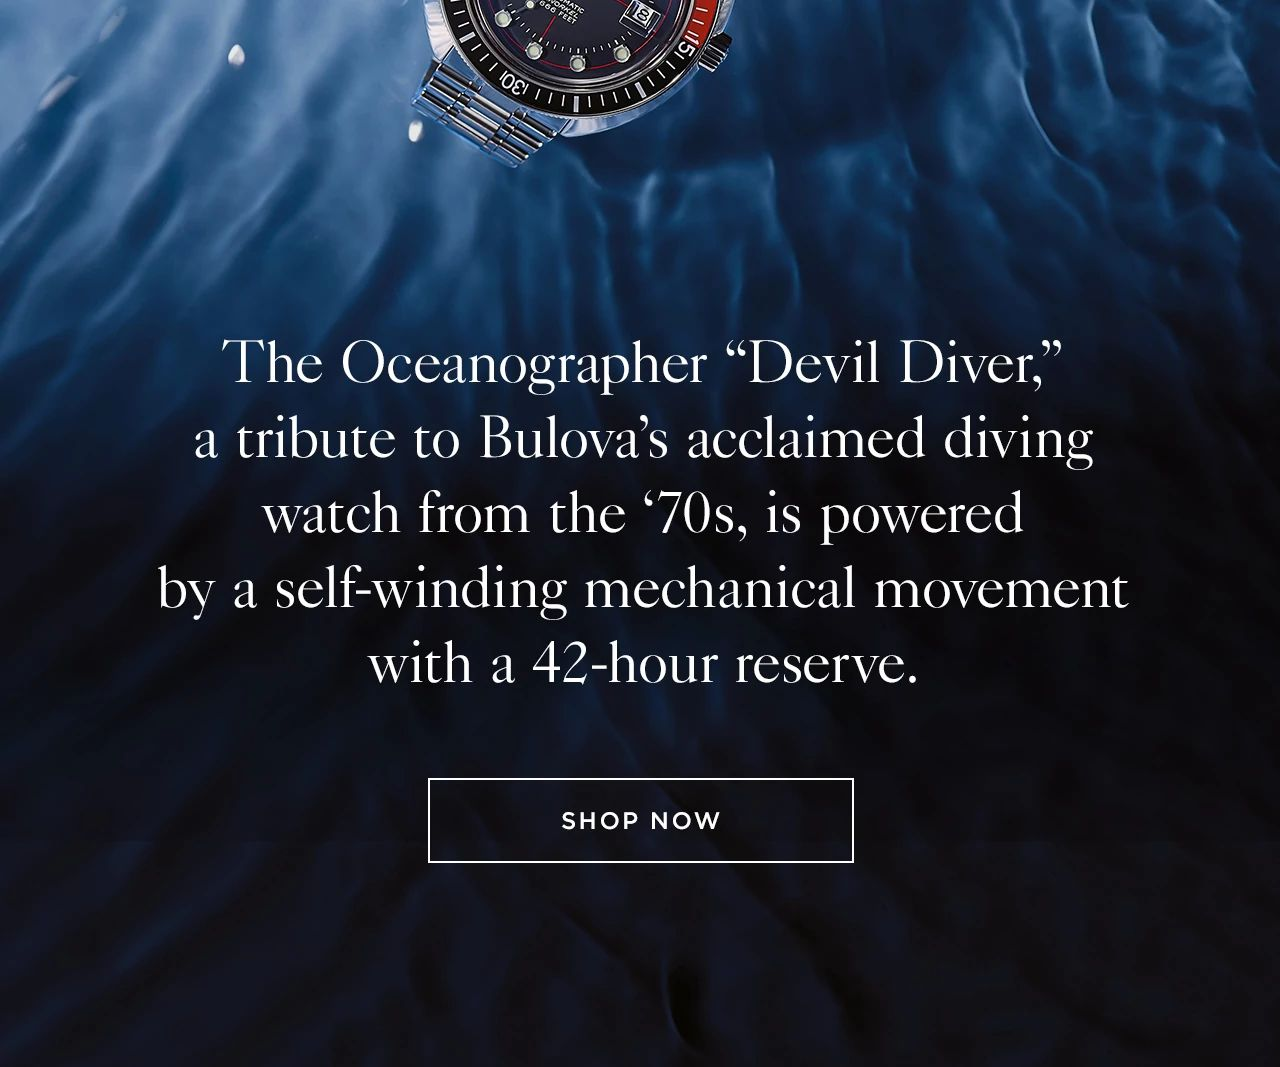 """The Oceanographer """"Devil Diver,"""" a tribute to Bulova's acclaimed diving watch from the '70s, is powered by a self-winding mechanical movement with a 42-hour reserve."""